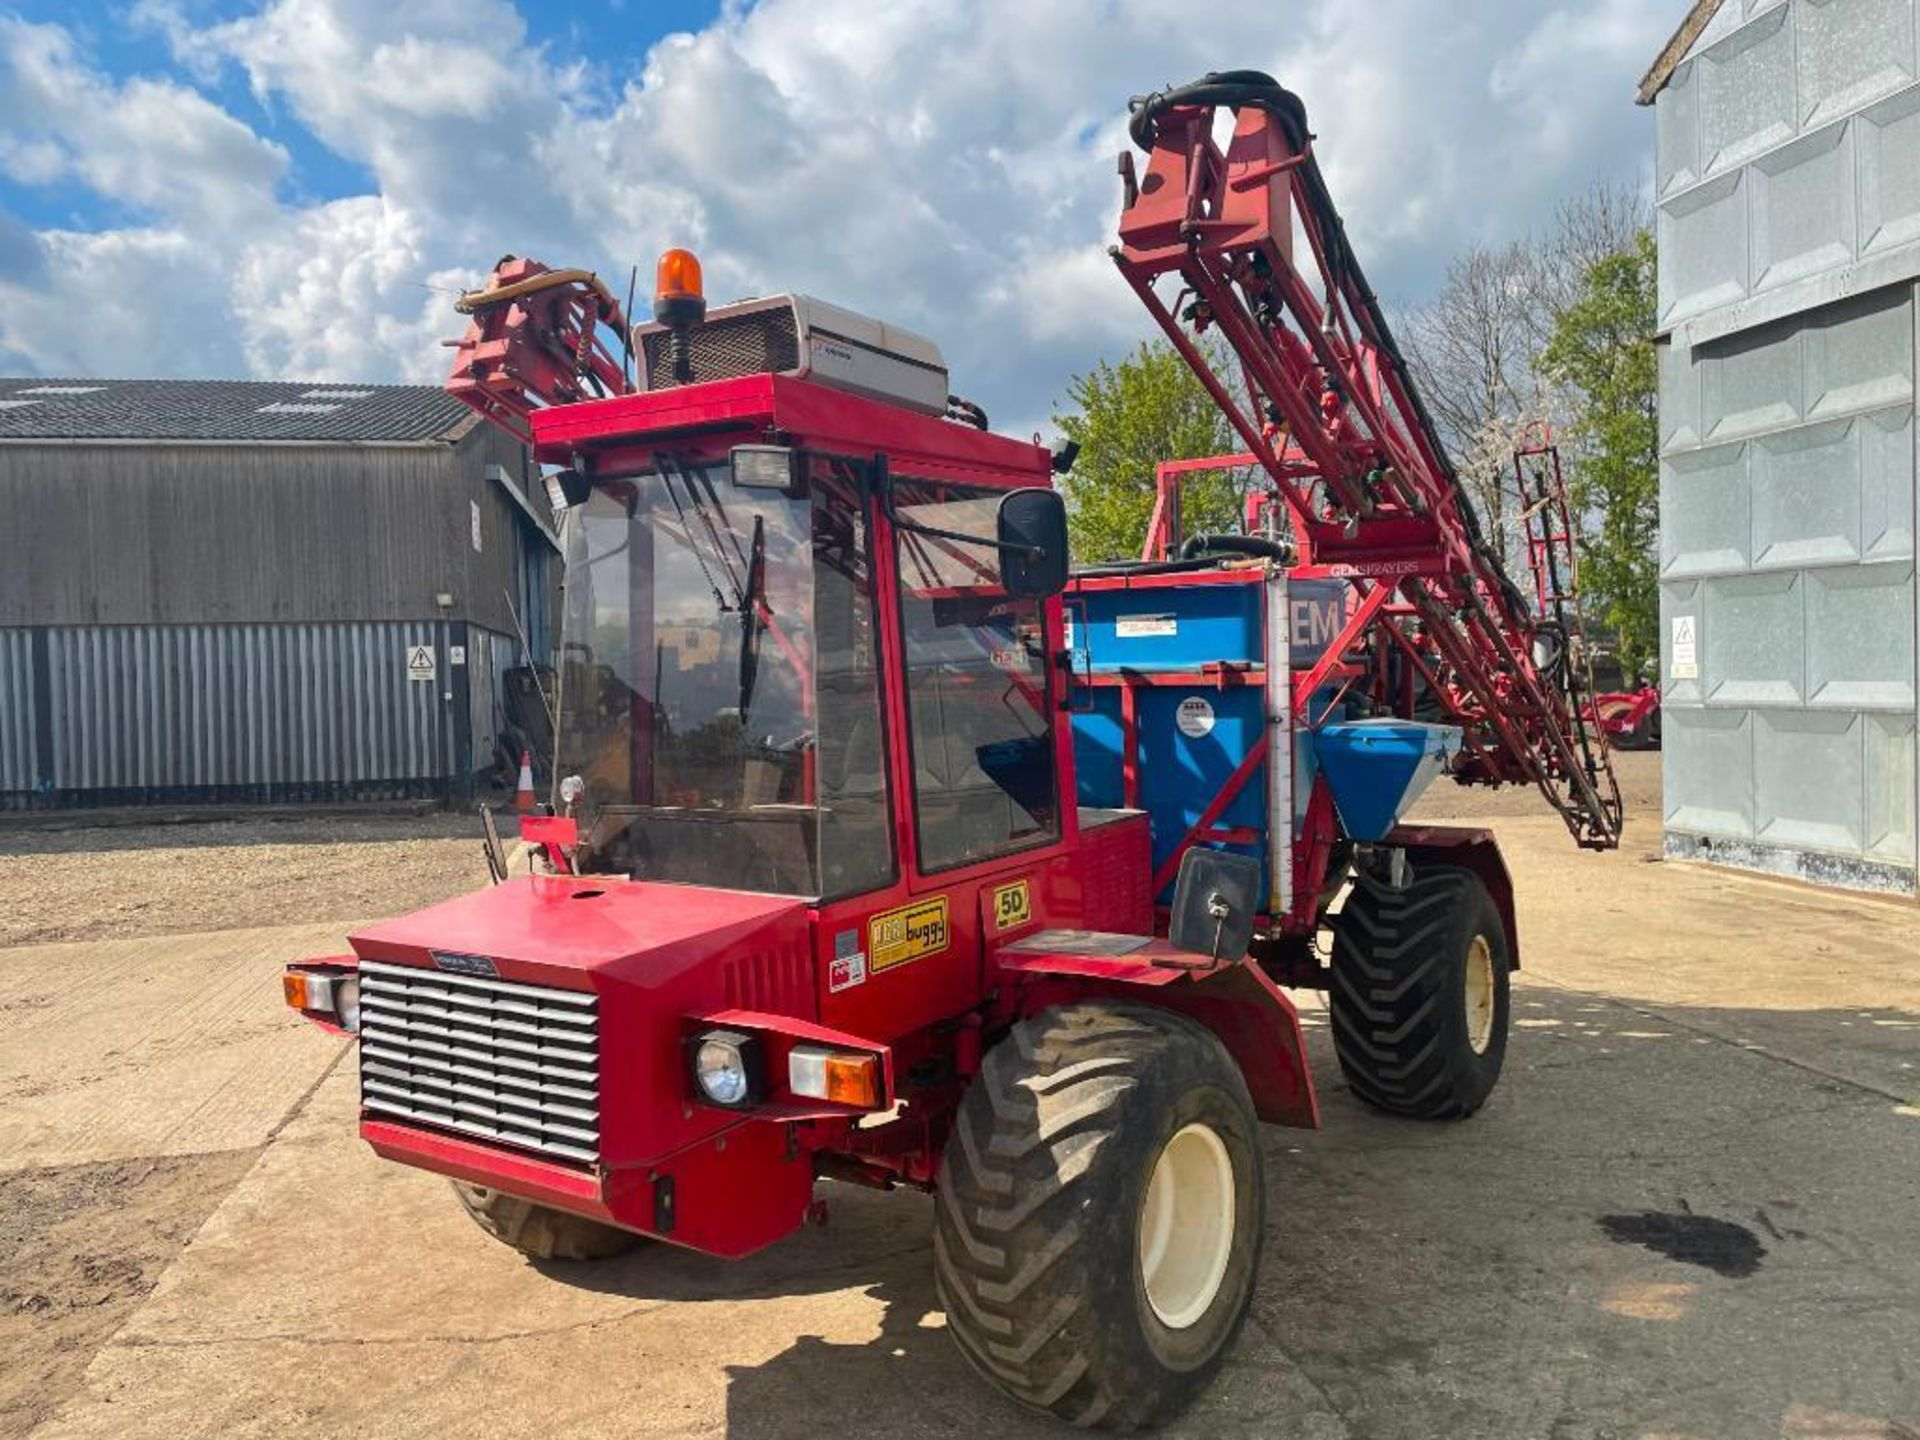 1995 Frazier Agri-Buggy SD with GEM 24m self propelled sprayer, 1500l tank on 38x20.00-16 wheels and - Image 20 of 27